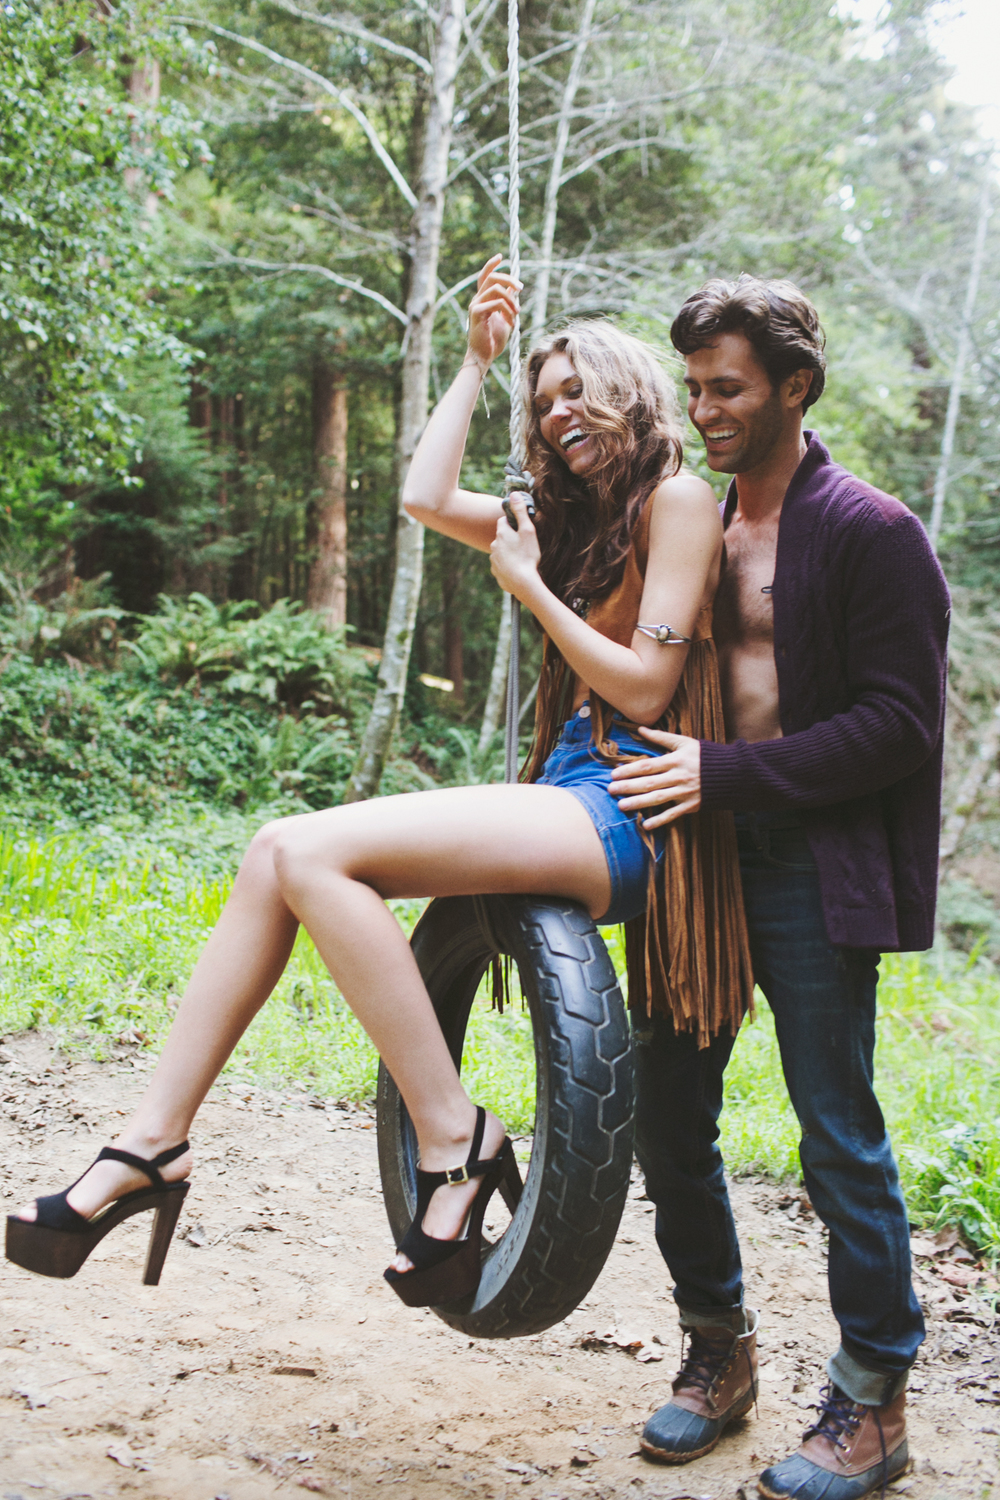 Fashion Photographer, Jennifer Skog's seductive & playful version of Cabin Fever.